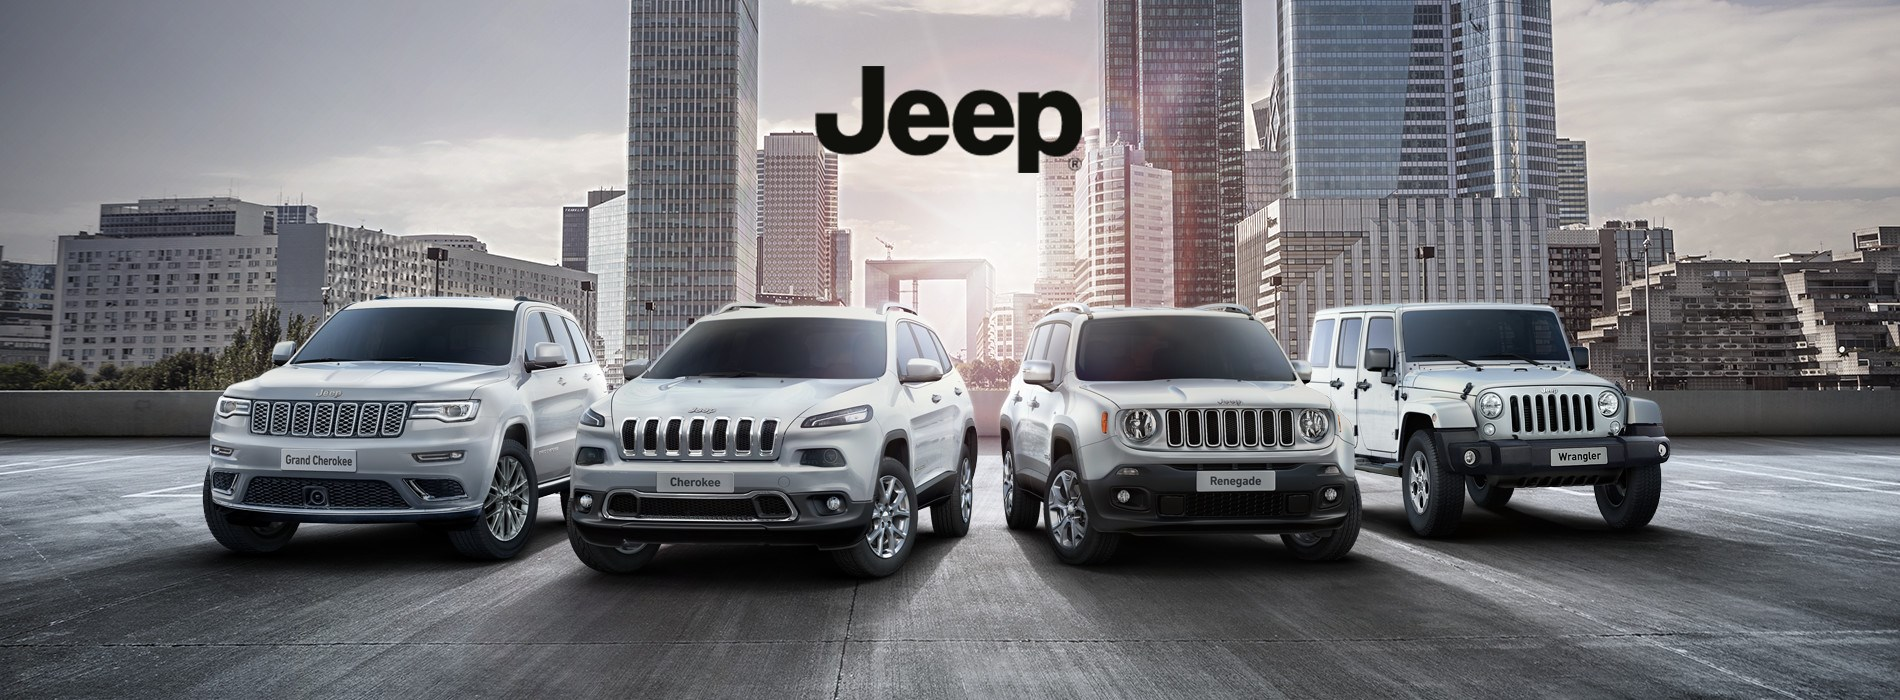 Gamme-Jeep